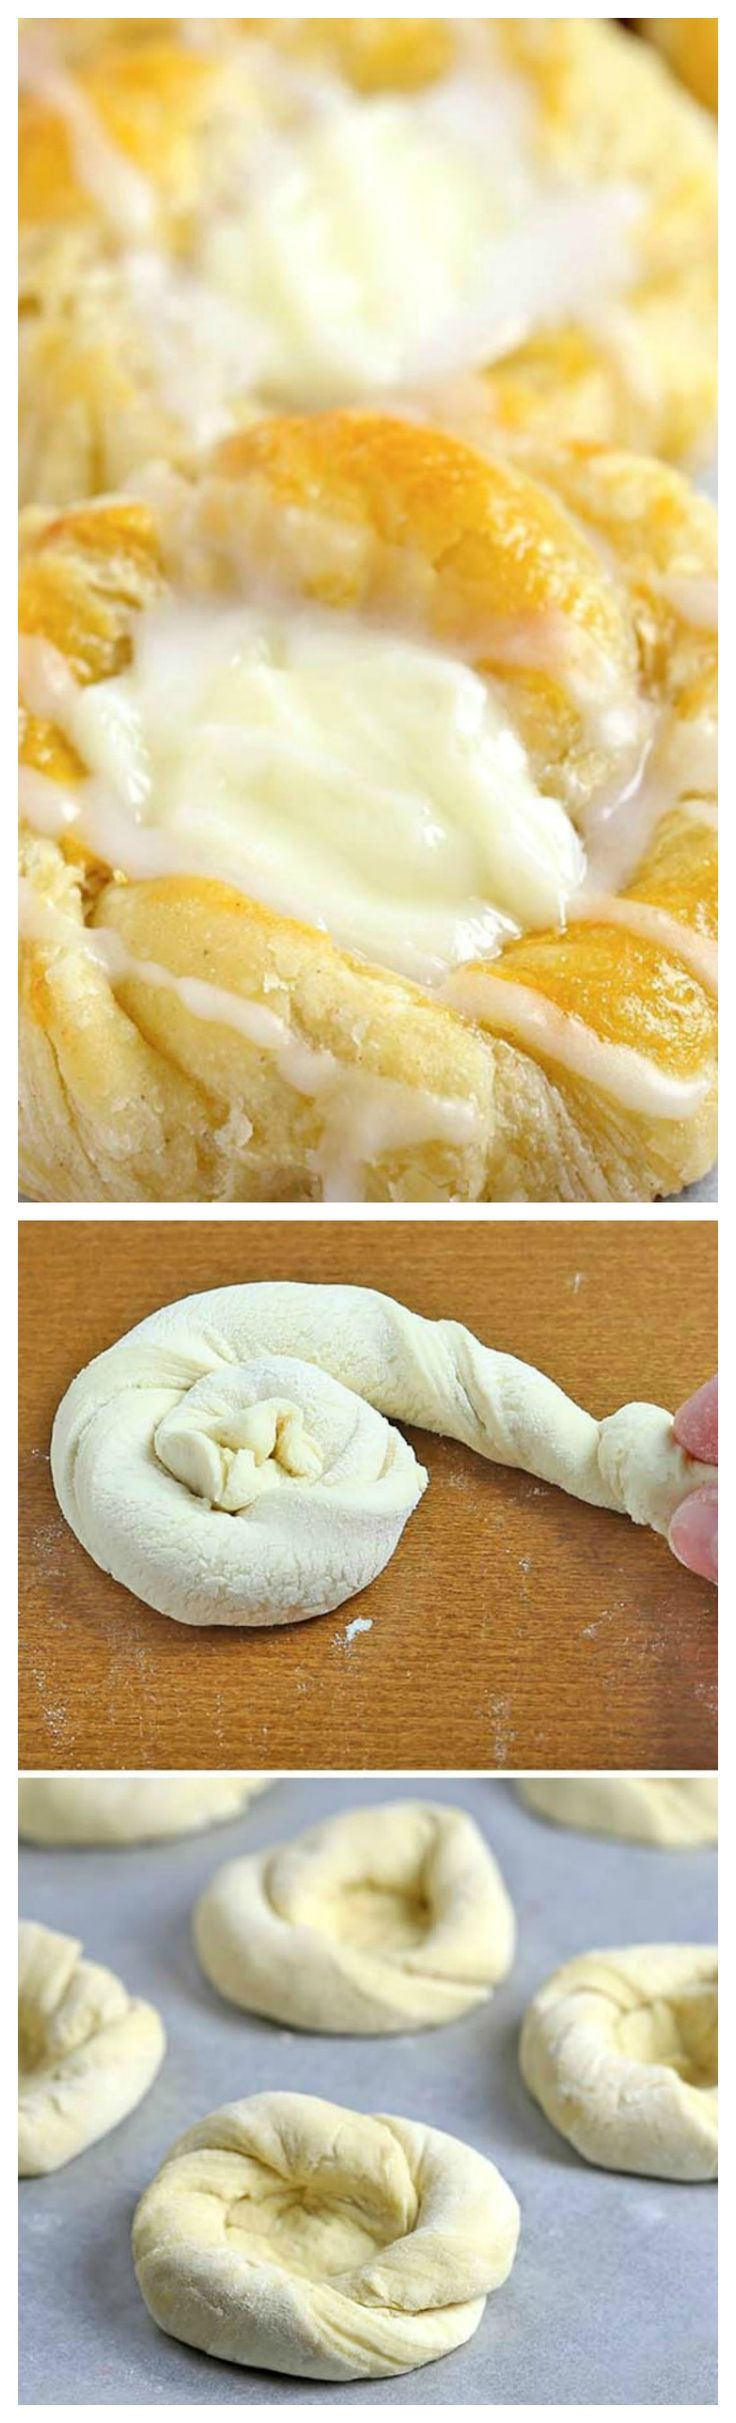 Quick and Easy Cream Cheese Danish ~ Starts with store-bought crescent roll dough, and can be made, start to finish in under 30 minutes.